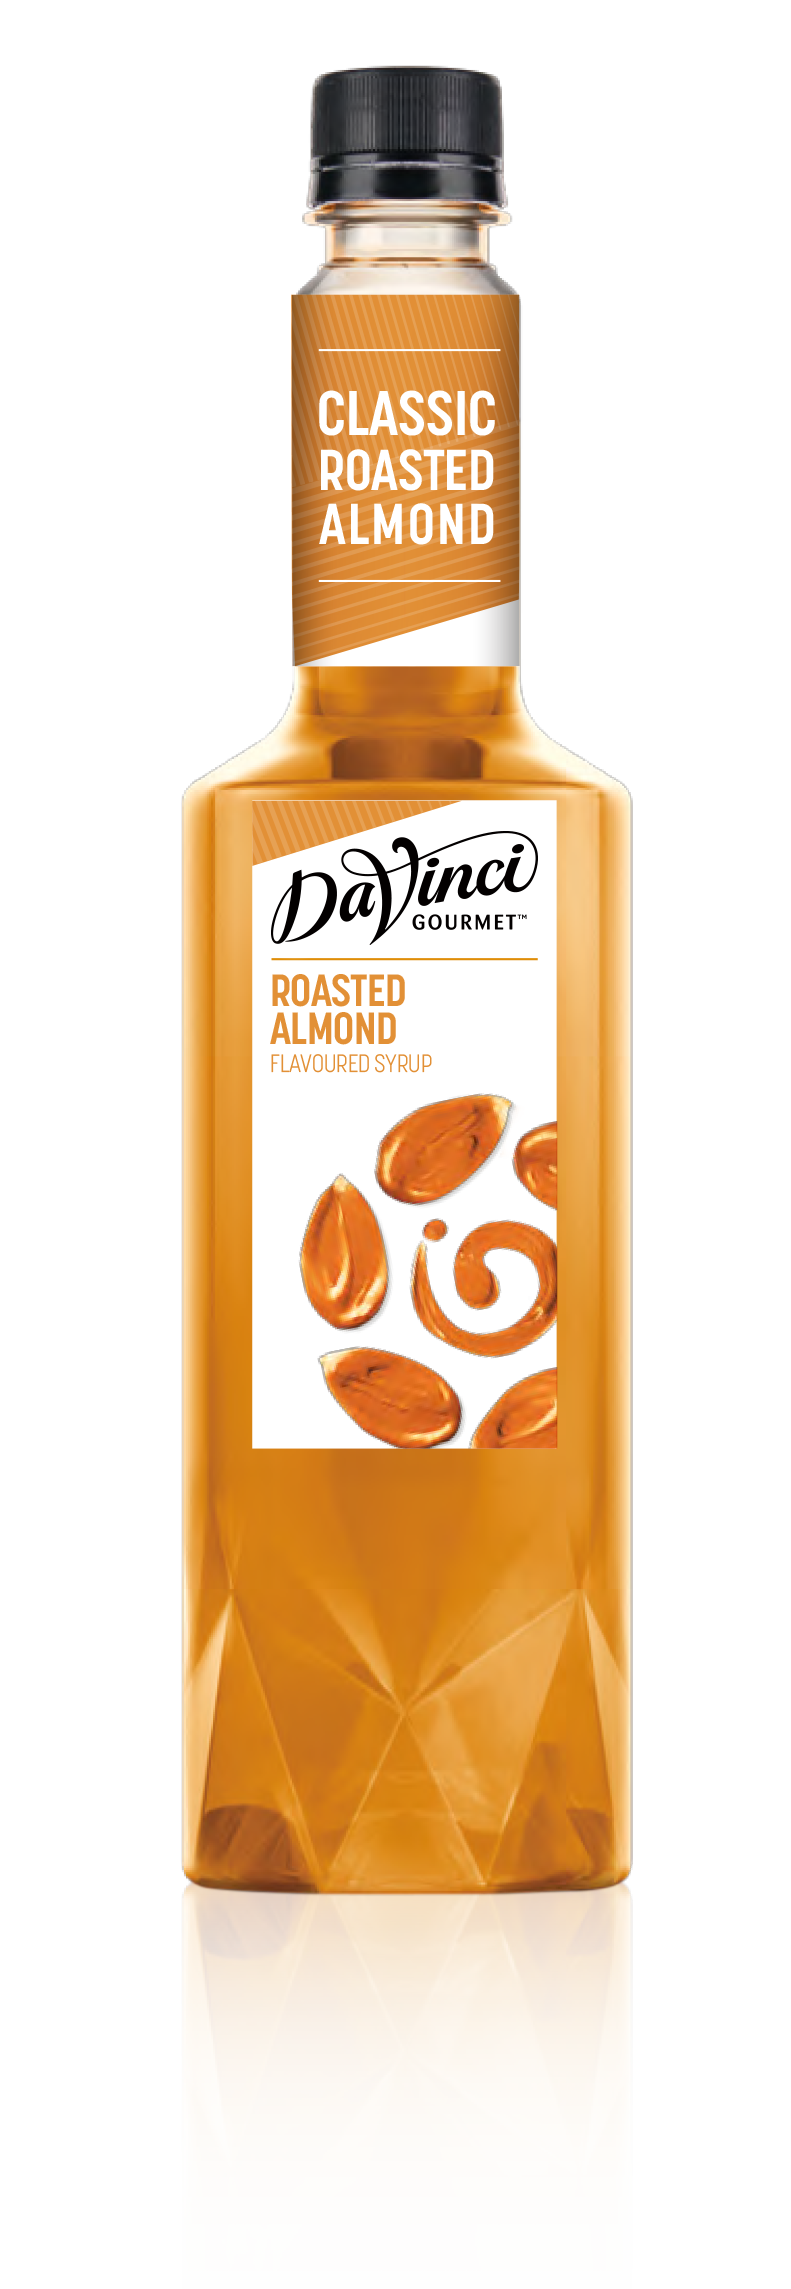 DaVinci Gourmet - Roasted Almond